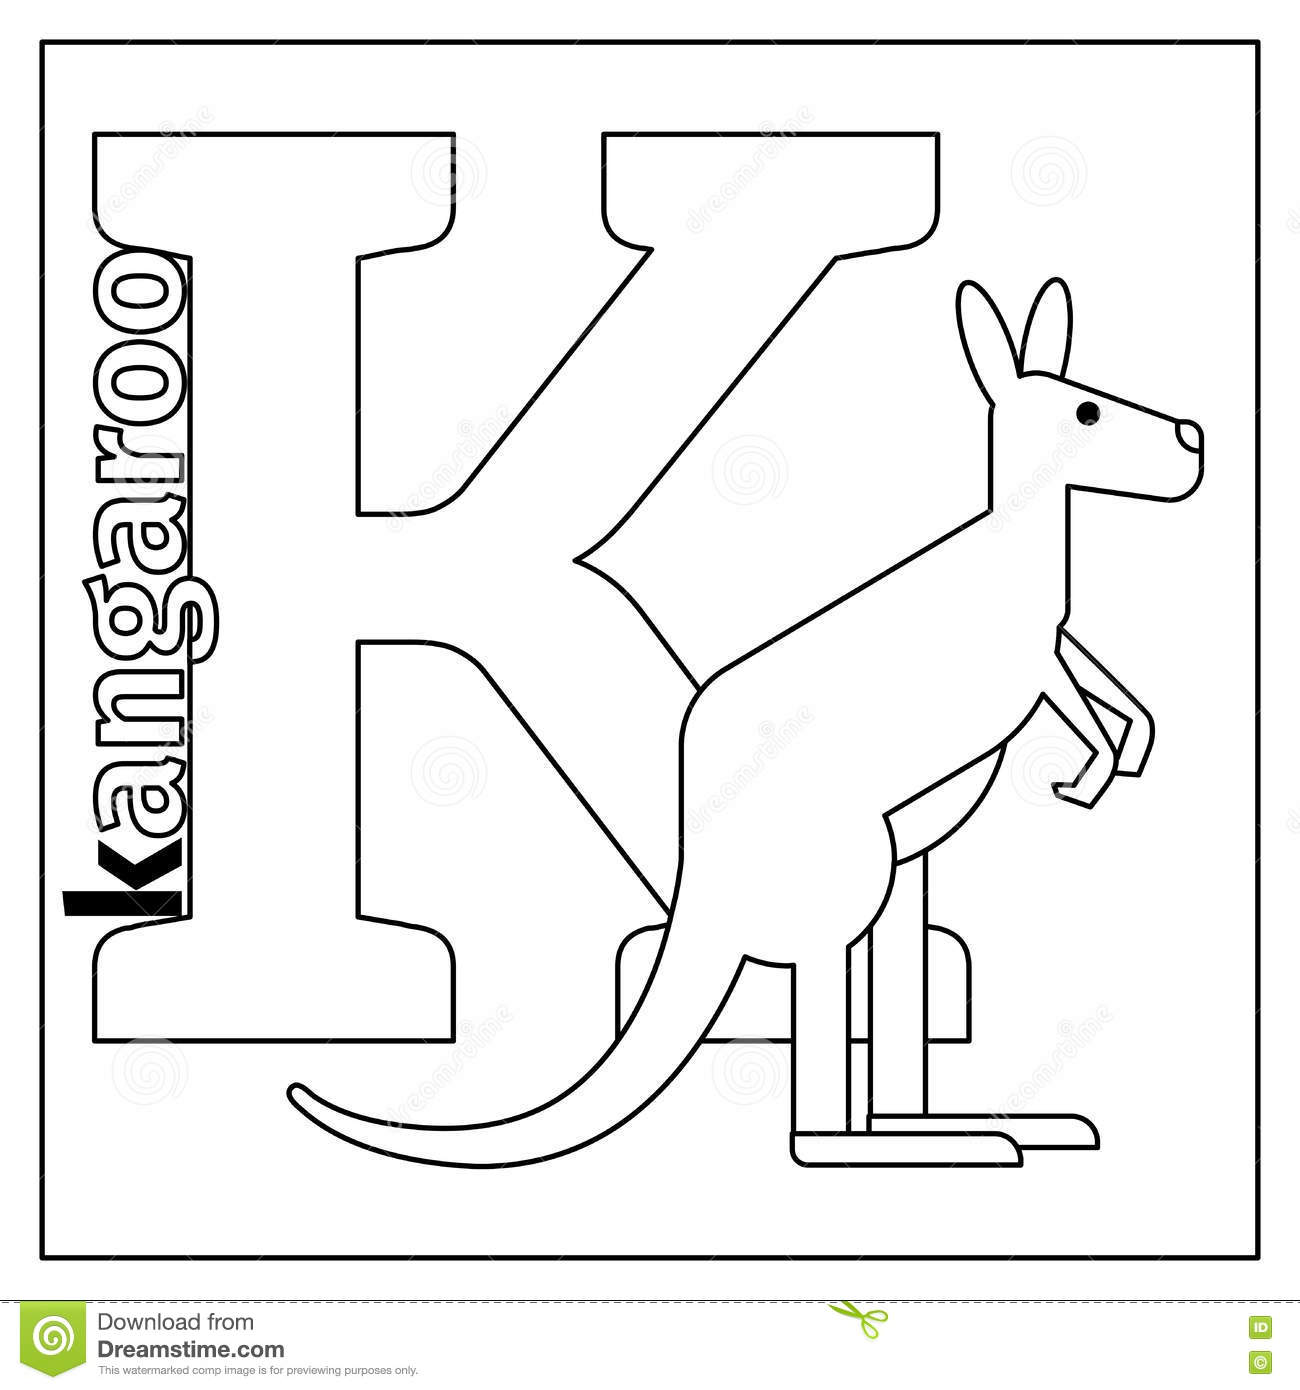 k for kangaroo coloring pages - photo#20